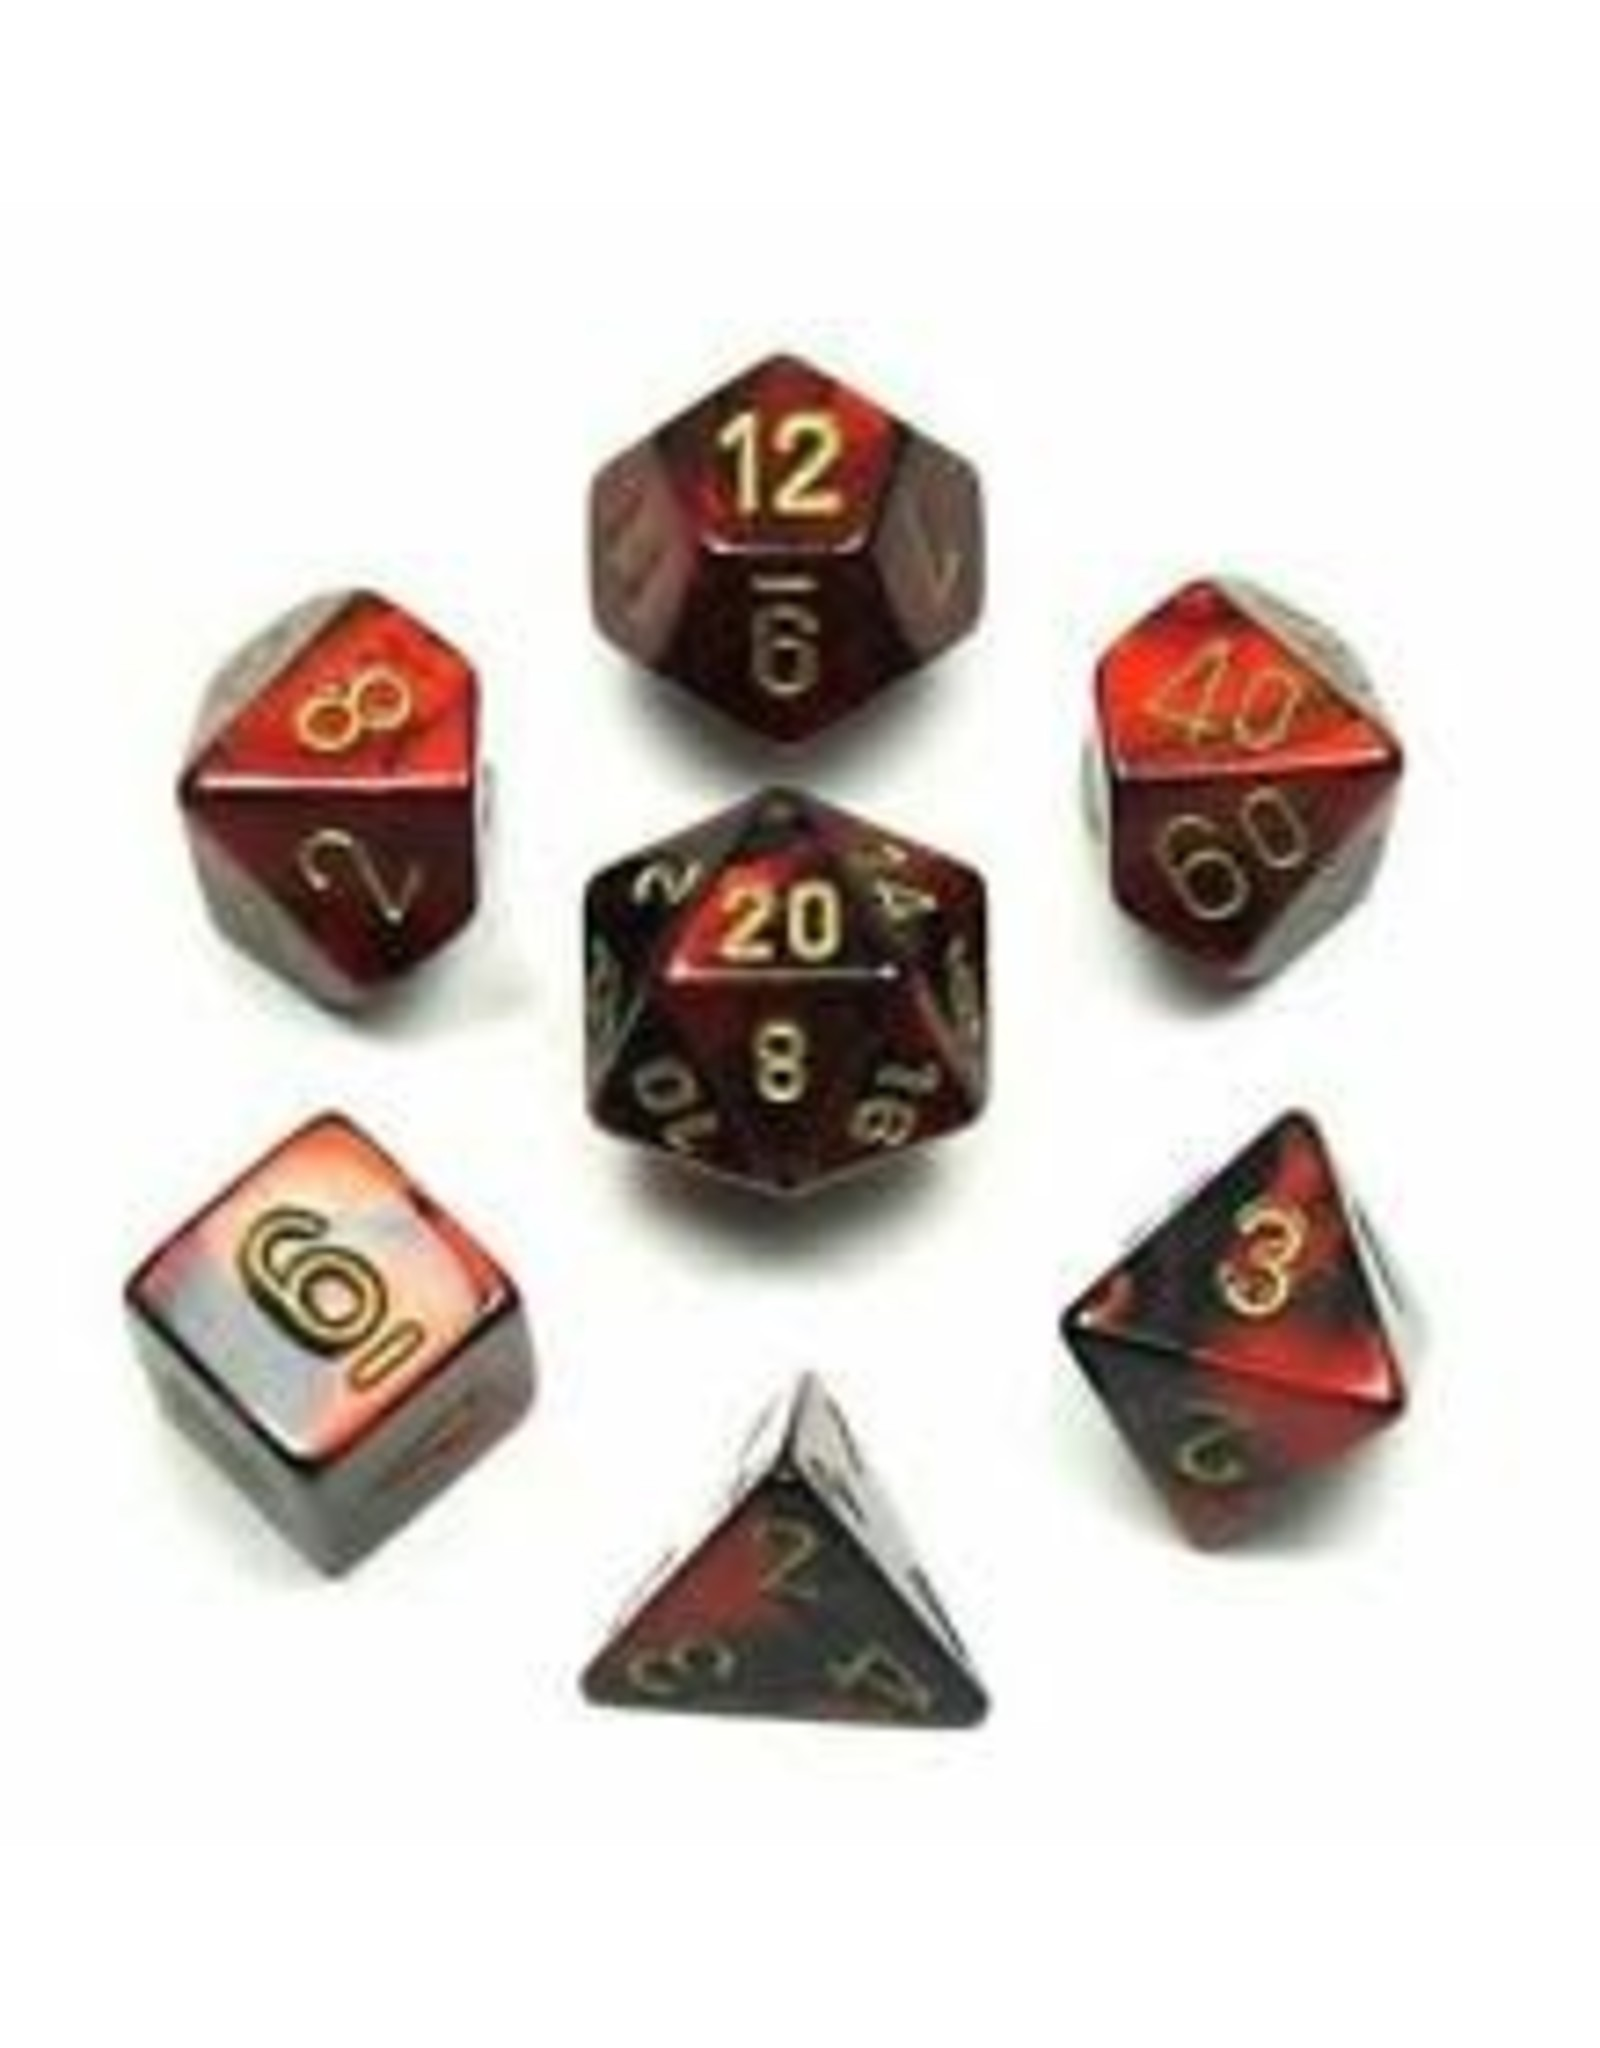 Chessex Polyhedral 7 Dice Set Gemini Black-Red w/Gold CHX26433